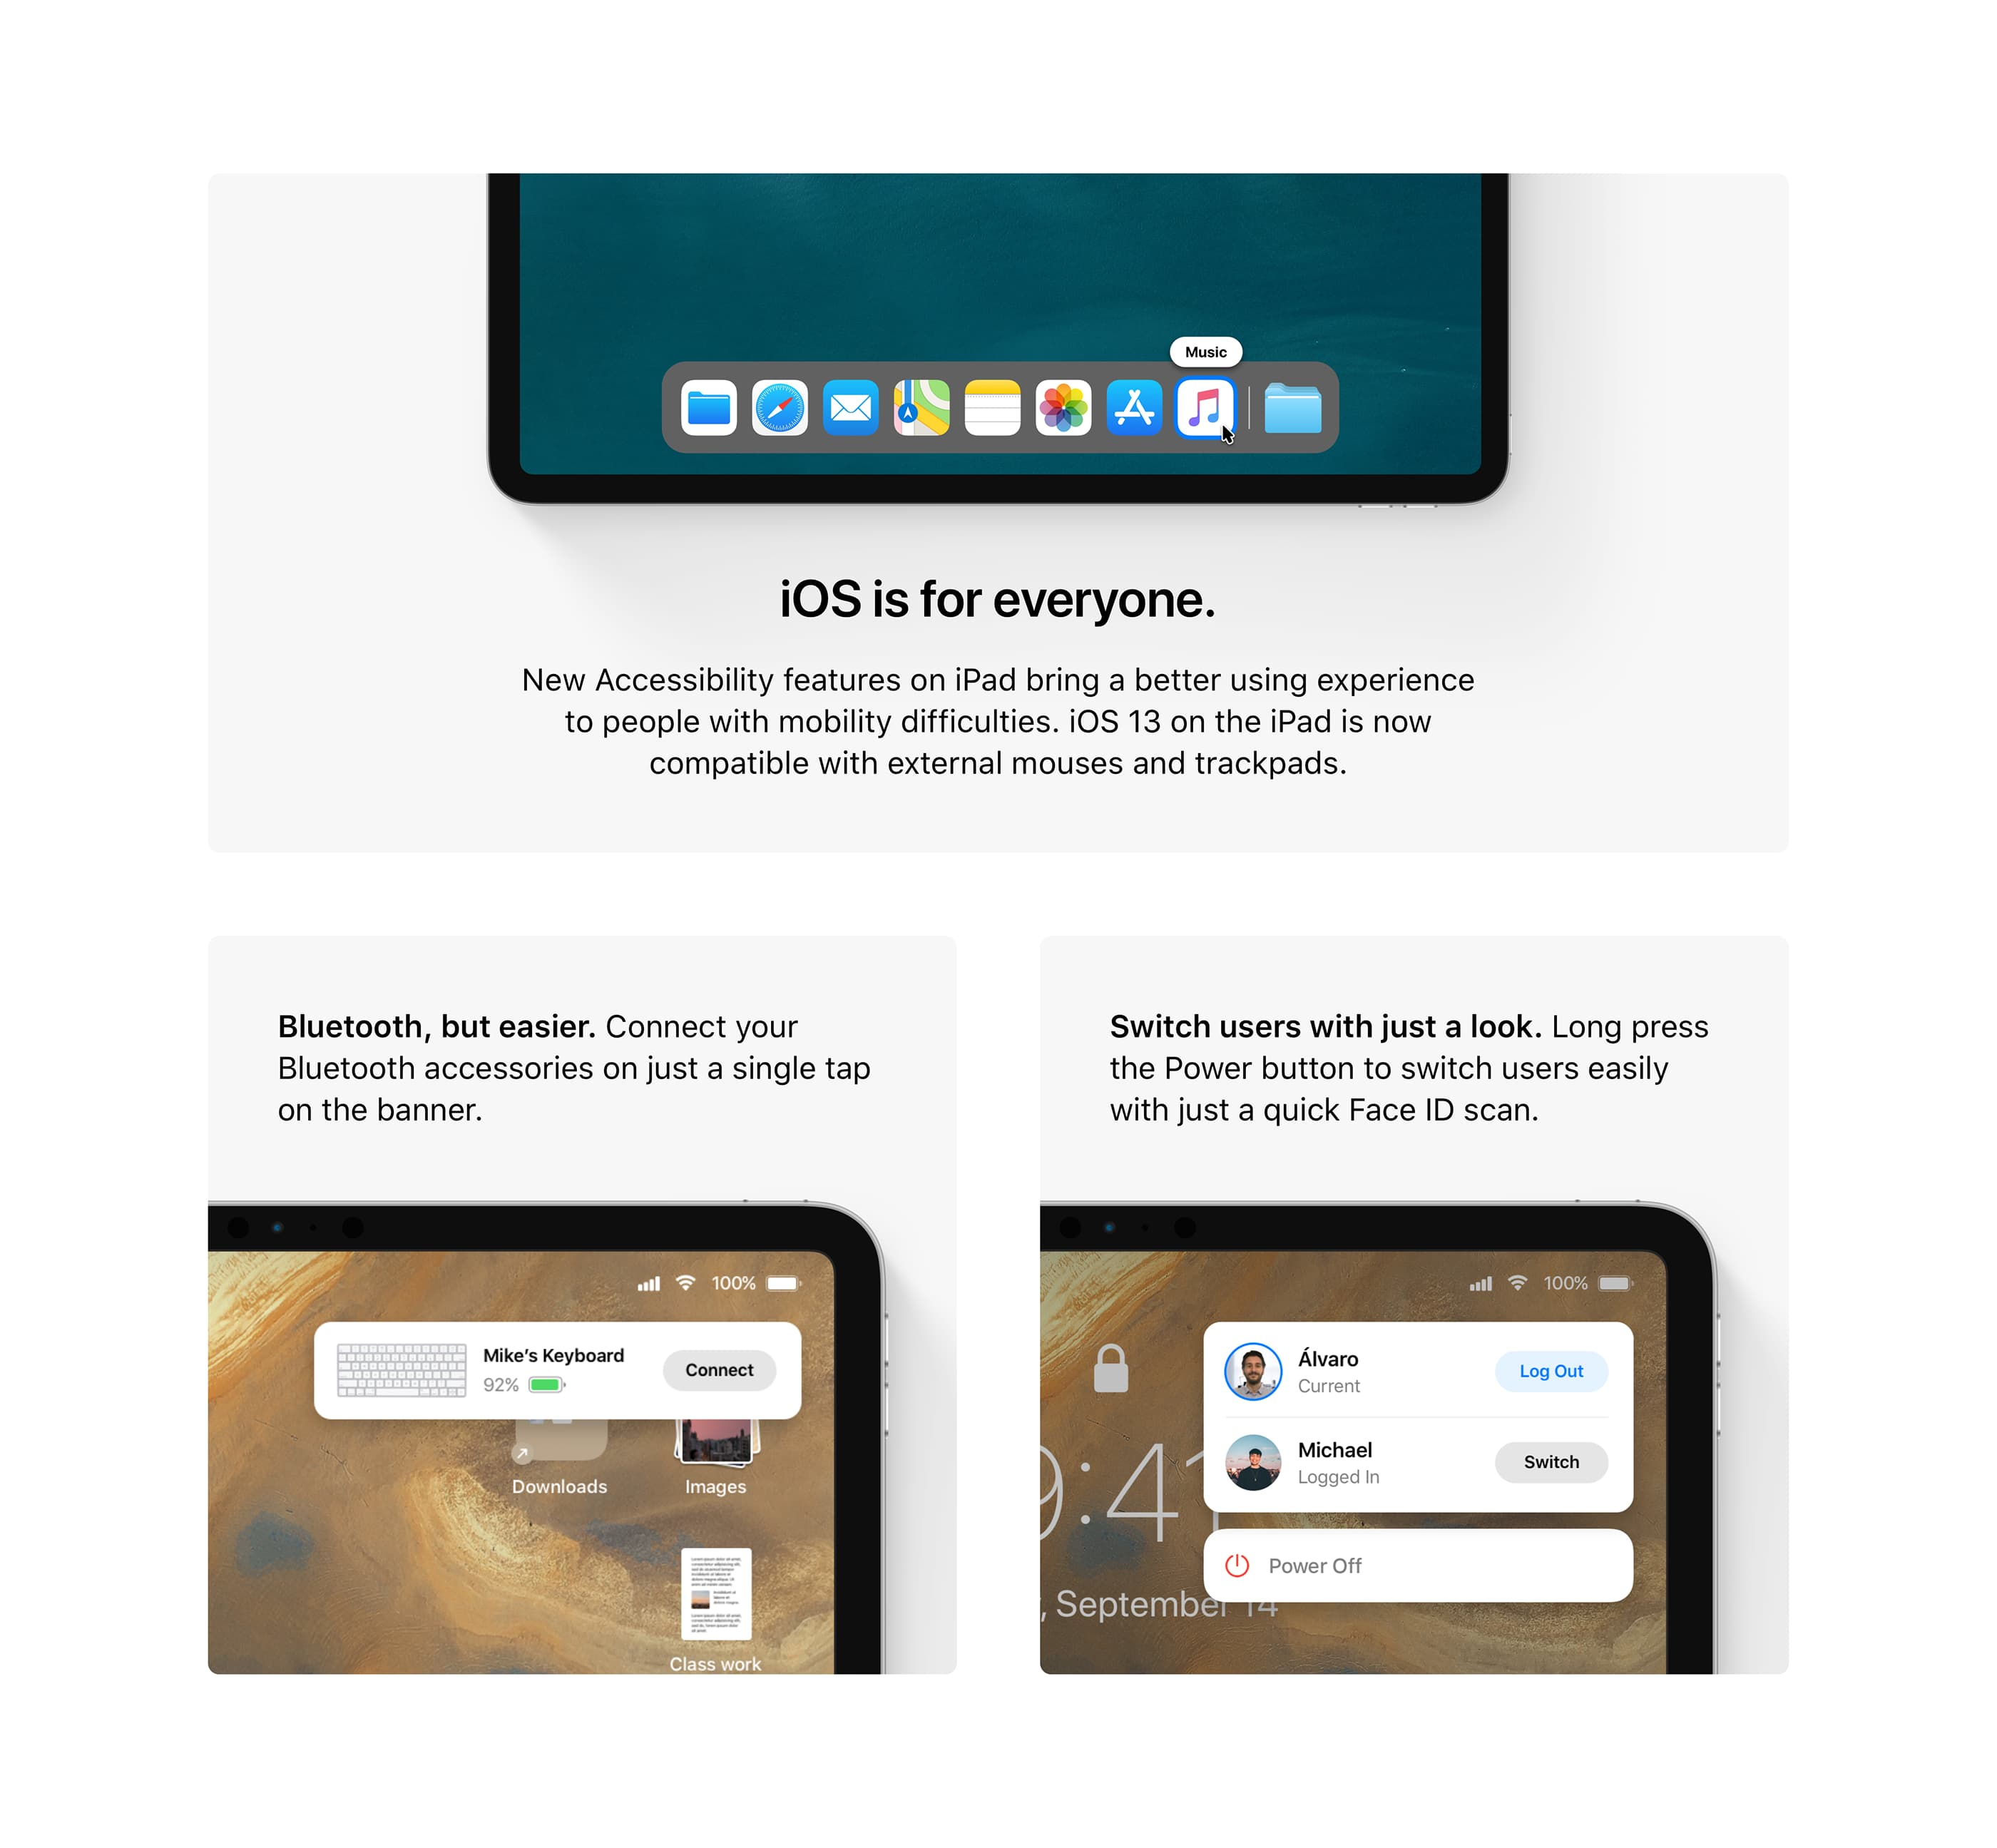 iOS 13 concept envisions revamped Mail app, better productivity, and more